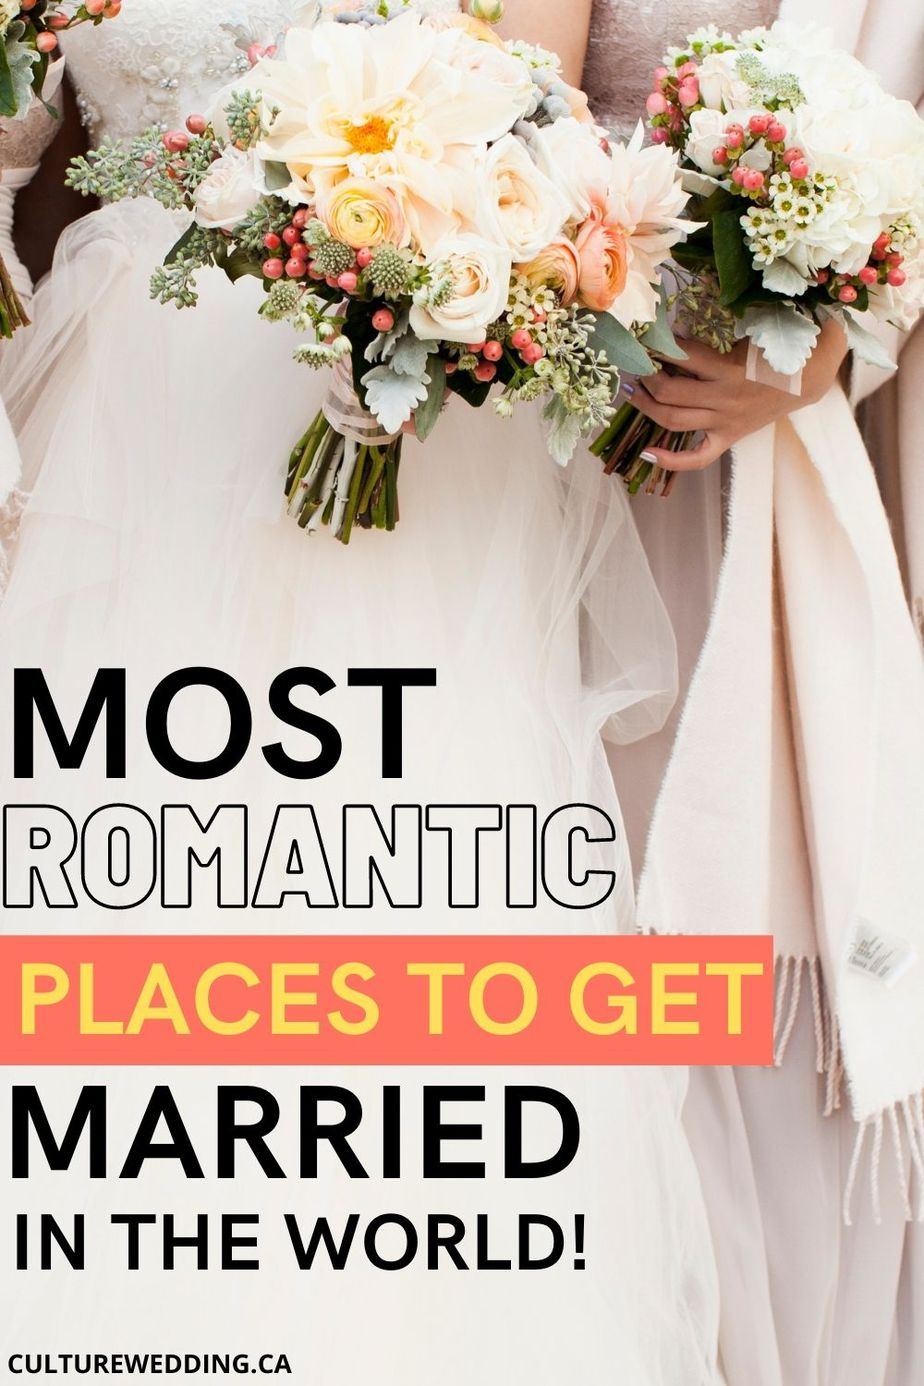 Here are the most beautiful places to get married! From picturesque mountaintops and vineyards to white-sand beaches, check out our list of the world's most beautiful places to get married.